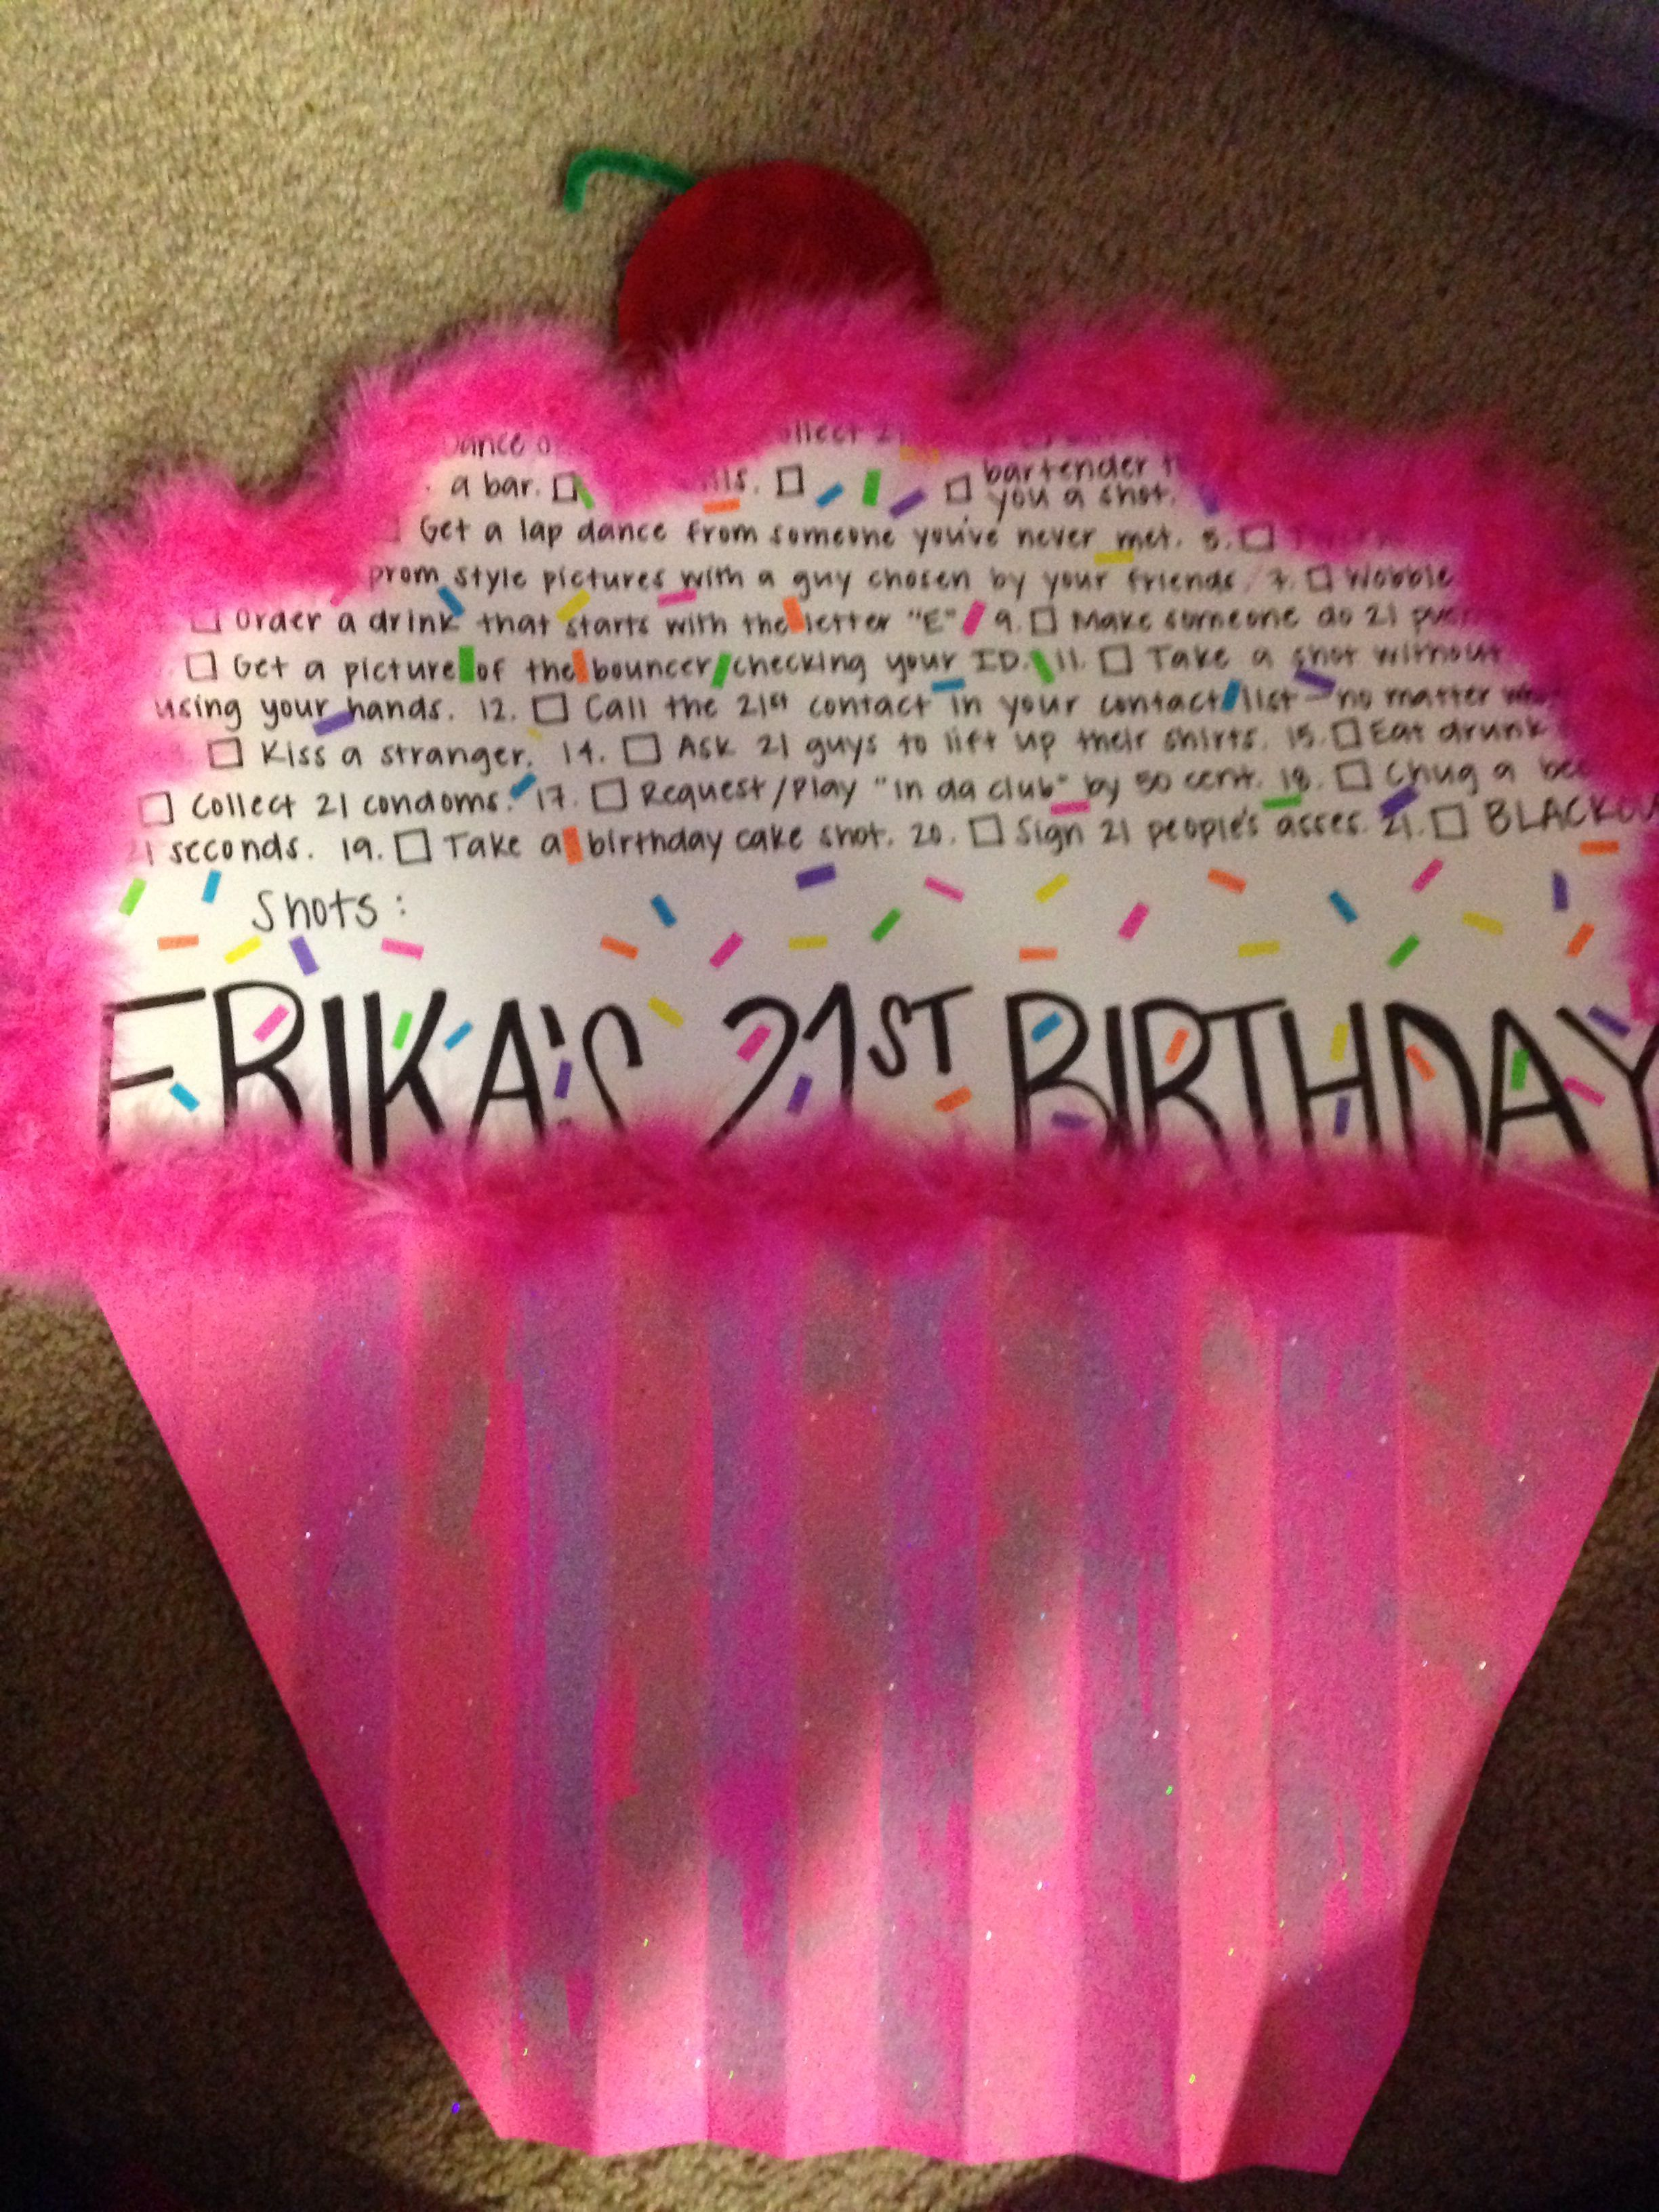 21st birthday sign #21 #birthday #crafts #signs #21stbirthdaysigns 21st birthday sign #21 #birthday #crafts #signs #21stbirthdaysigns